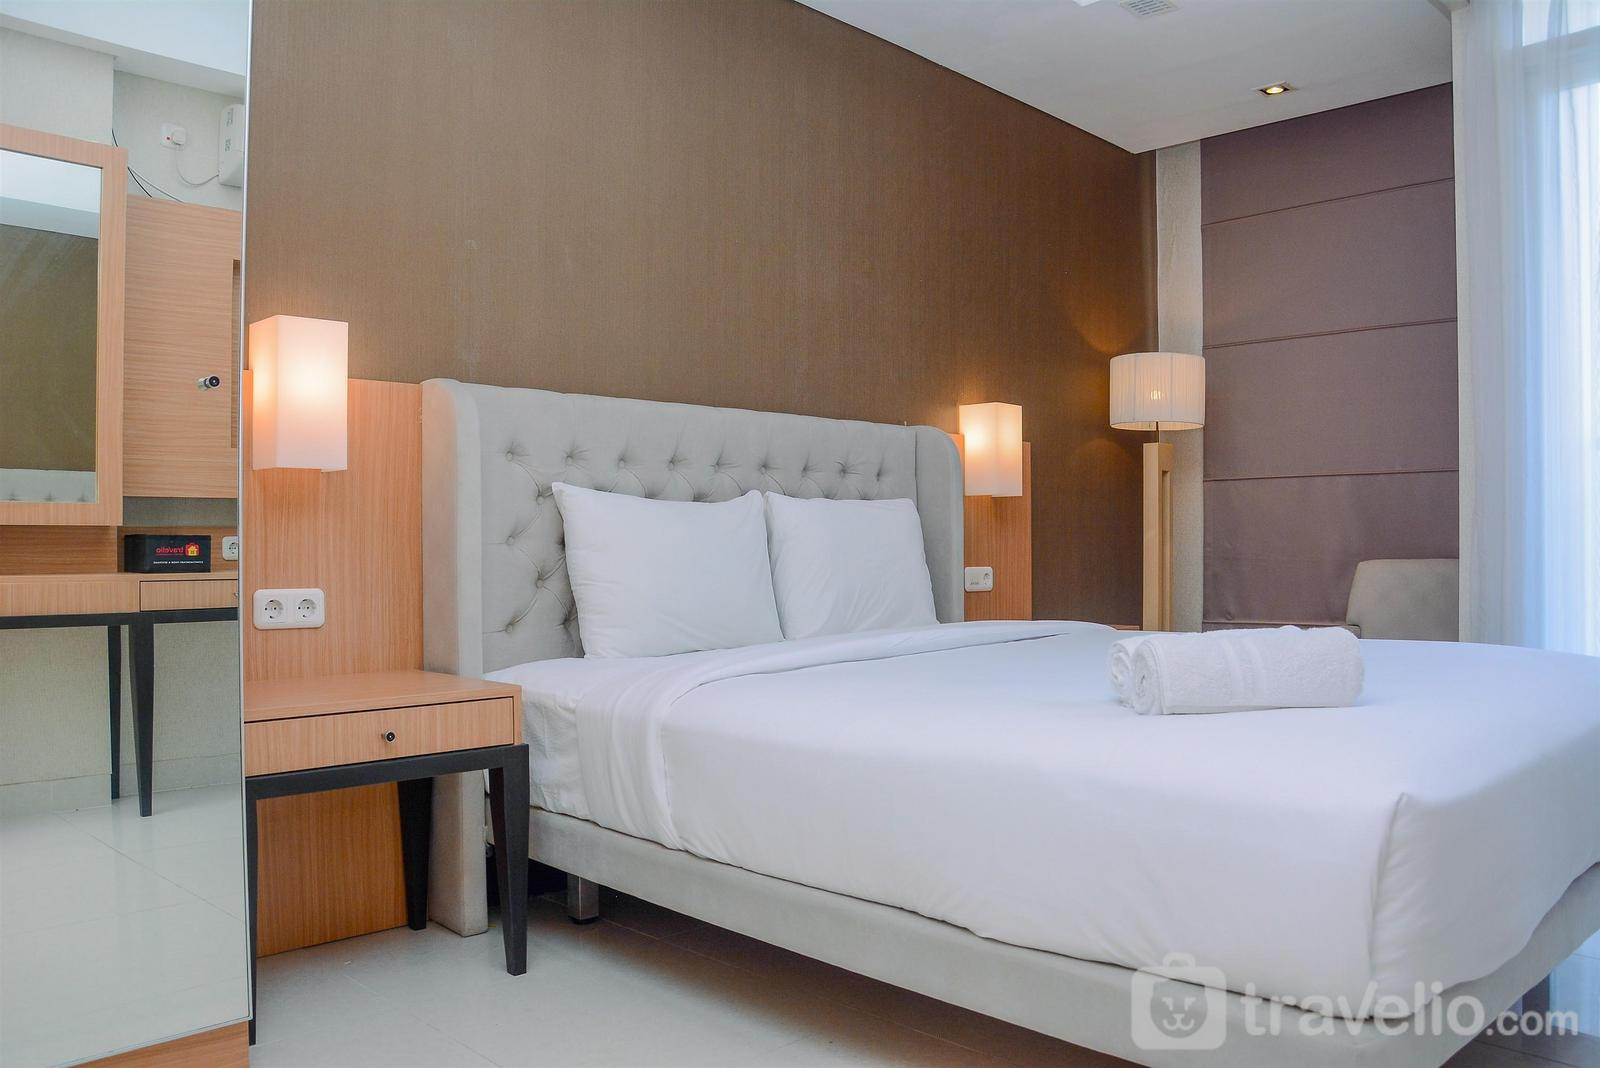 Apartemen Elpis Residence - Modern and Tidy Studio Apartment at Elpis Residence By Travelio